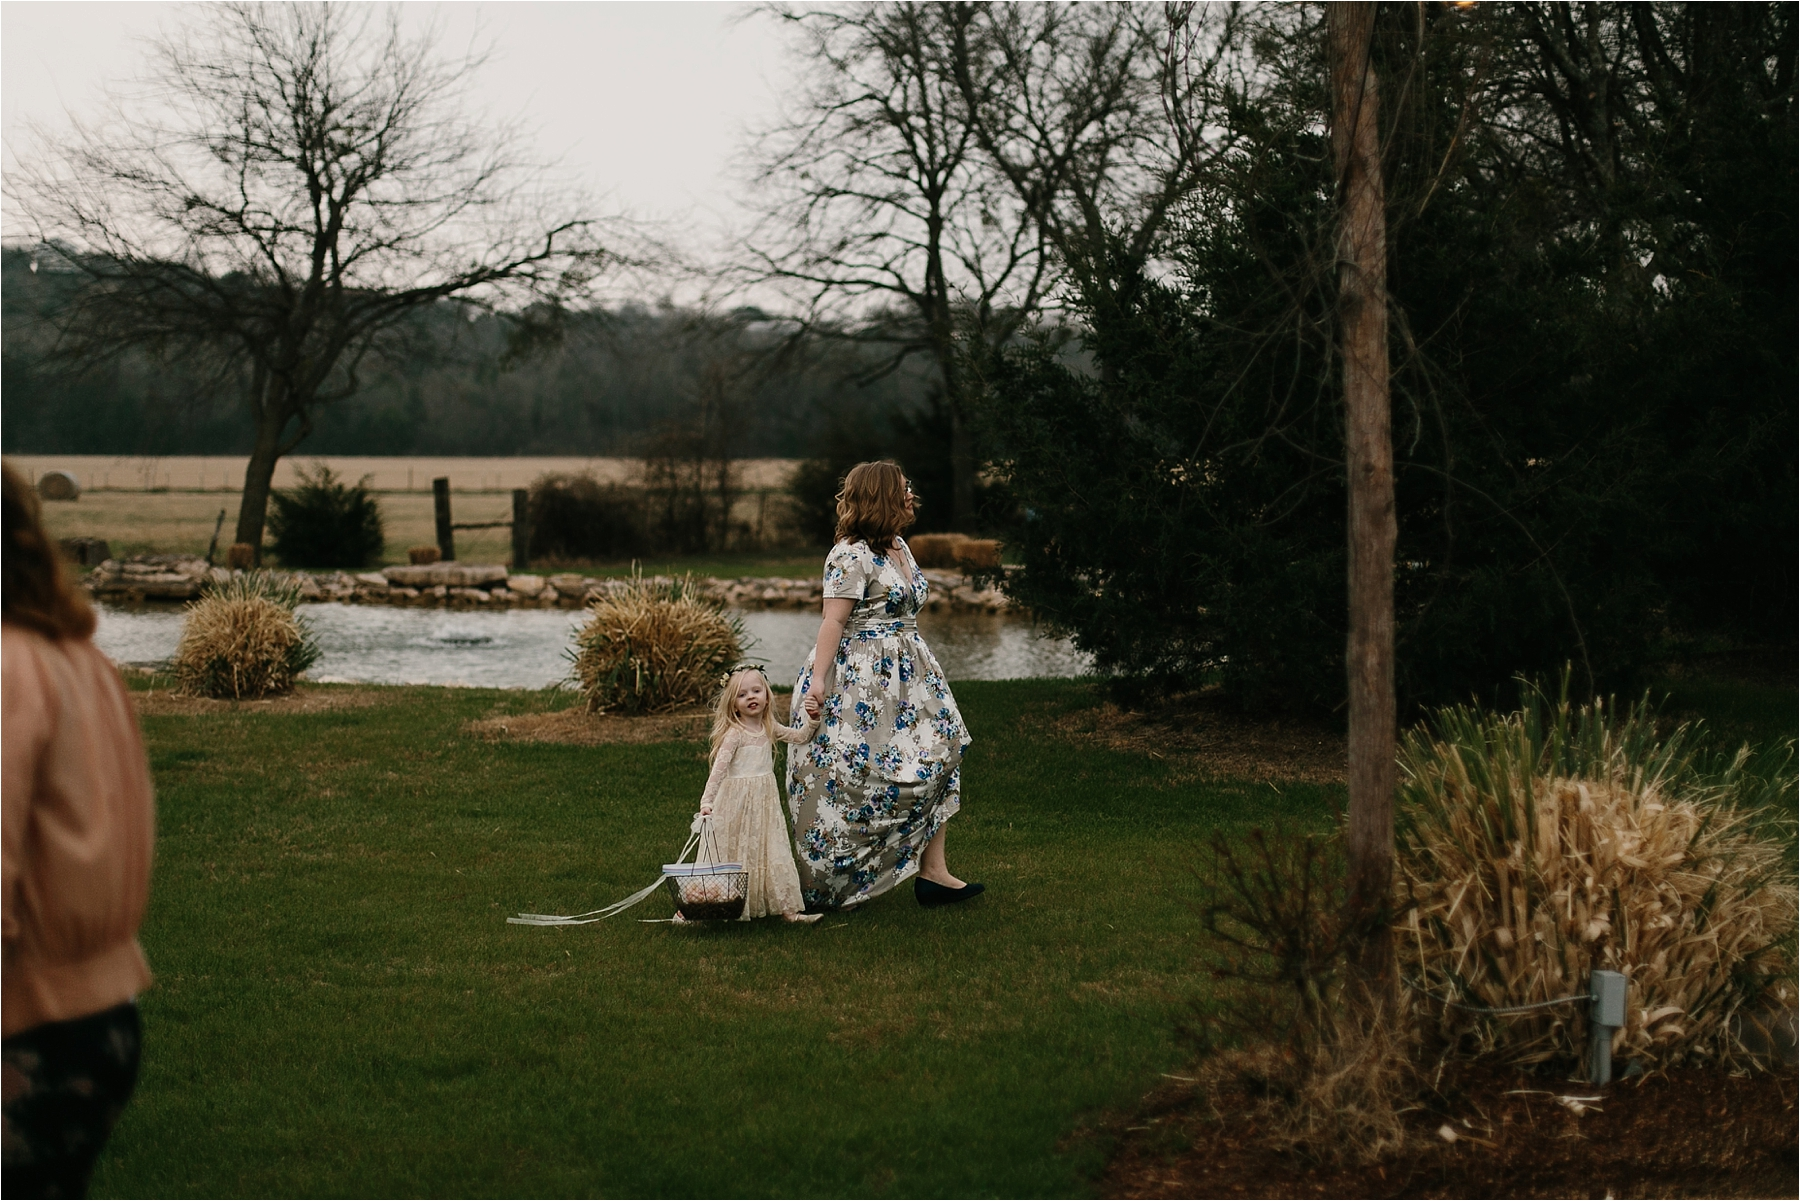 Lauren + Matt __ an intimate, emotional, blush pink, navy blue, and greenery toned wedding accents at the Brooks at Weatherford by North Texas Wedding Photographer Rachel Meagan Photography095